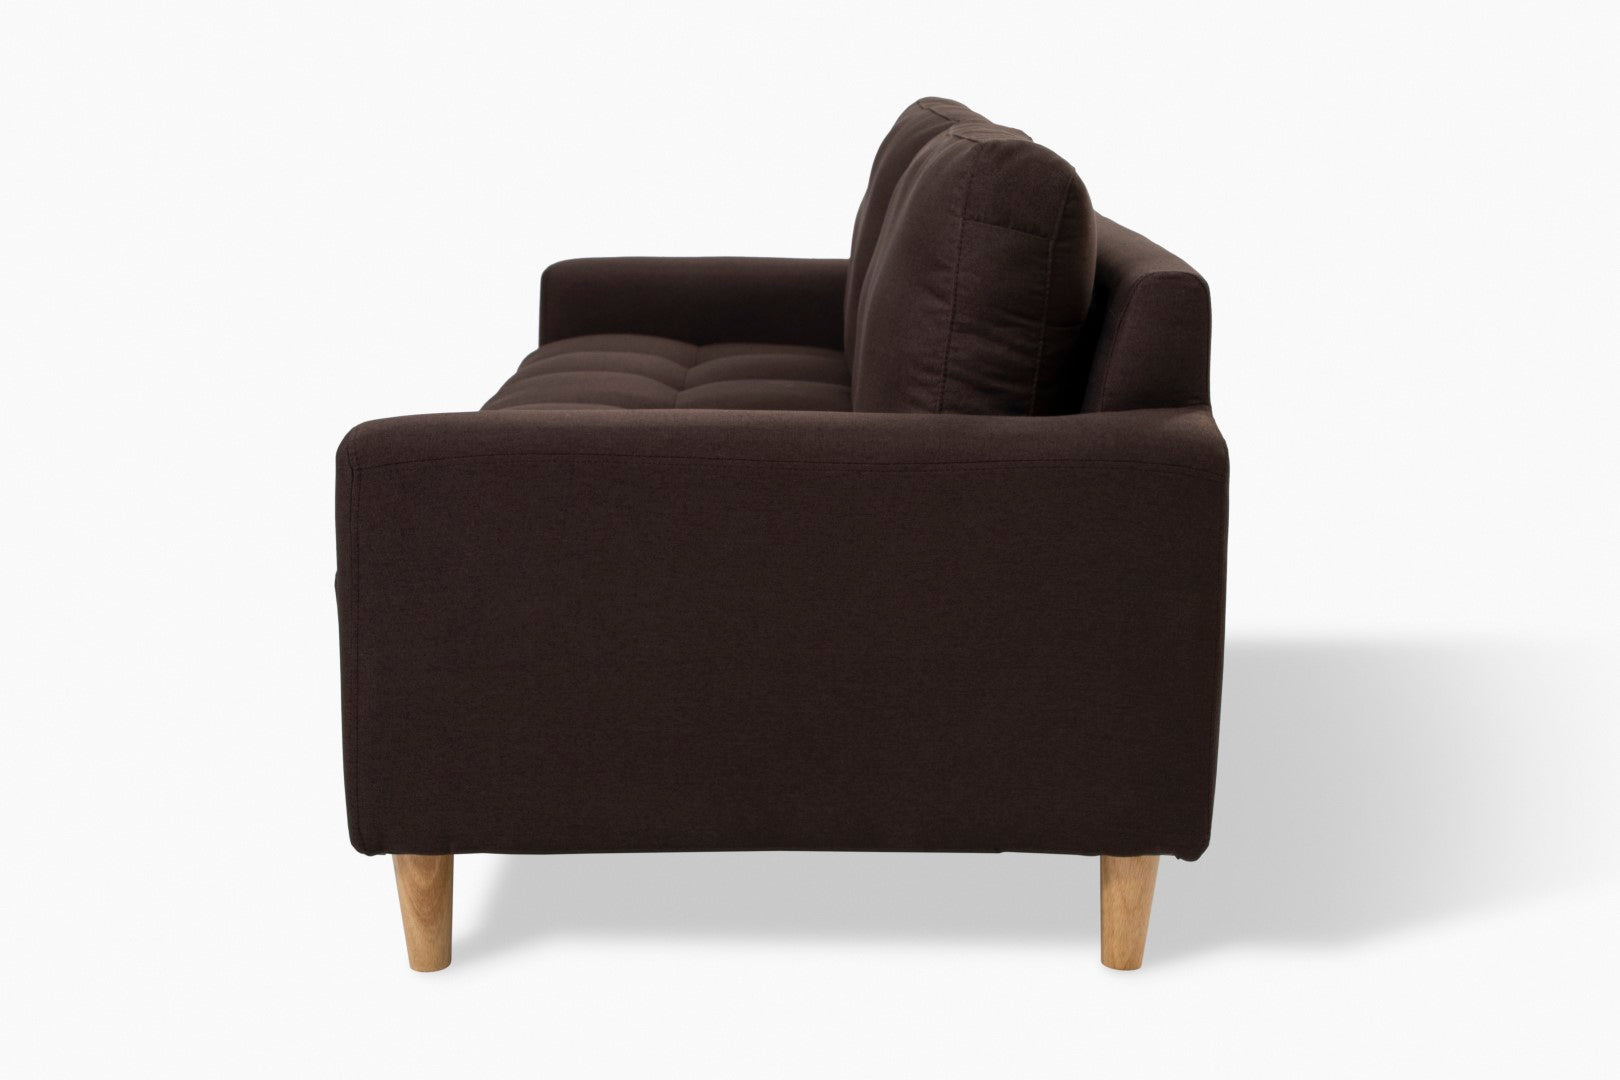 Sophia 3 Seater Taupe Couch side view